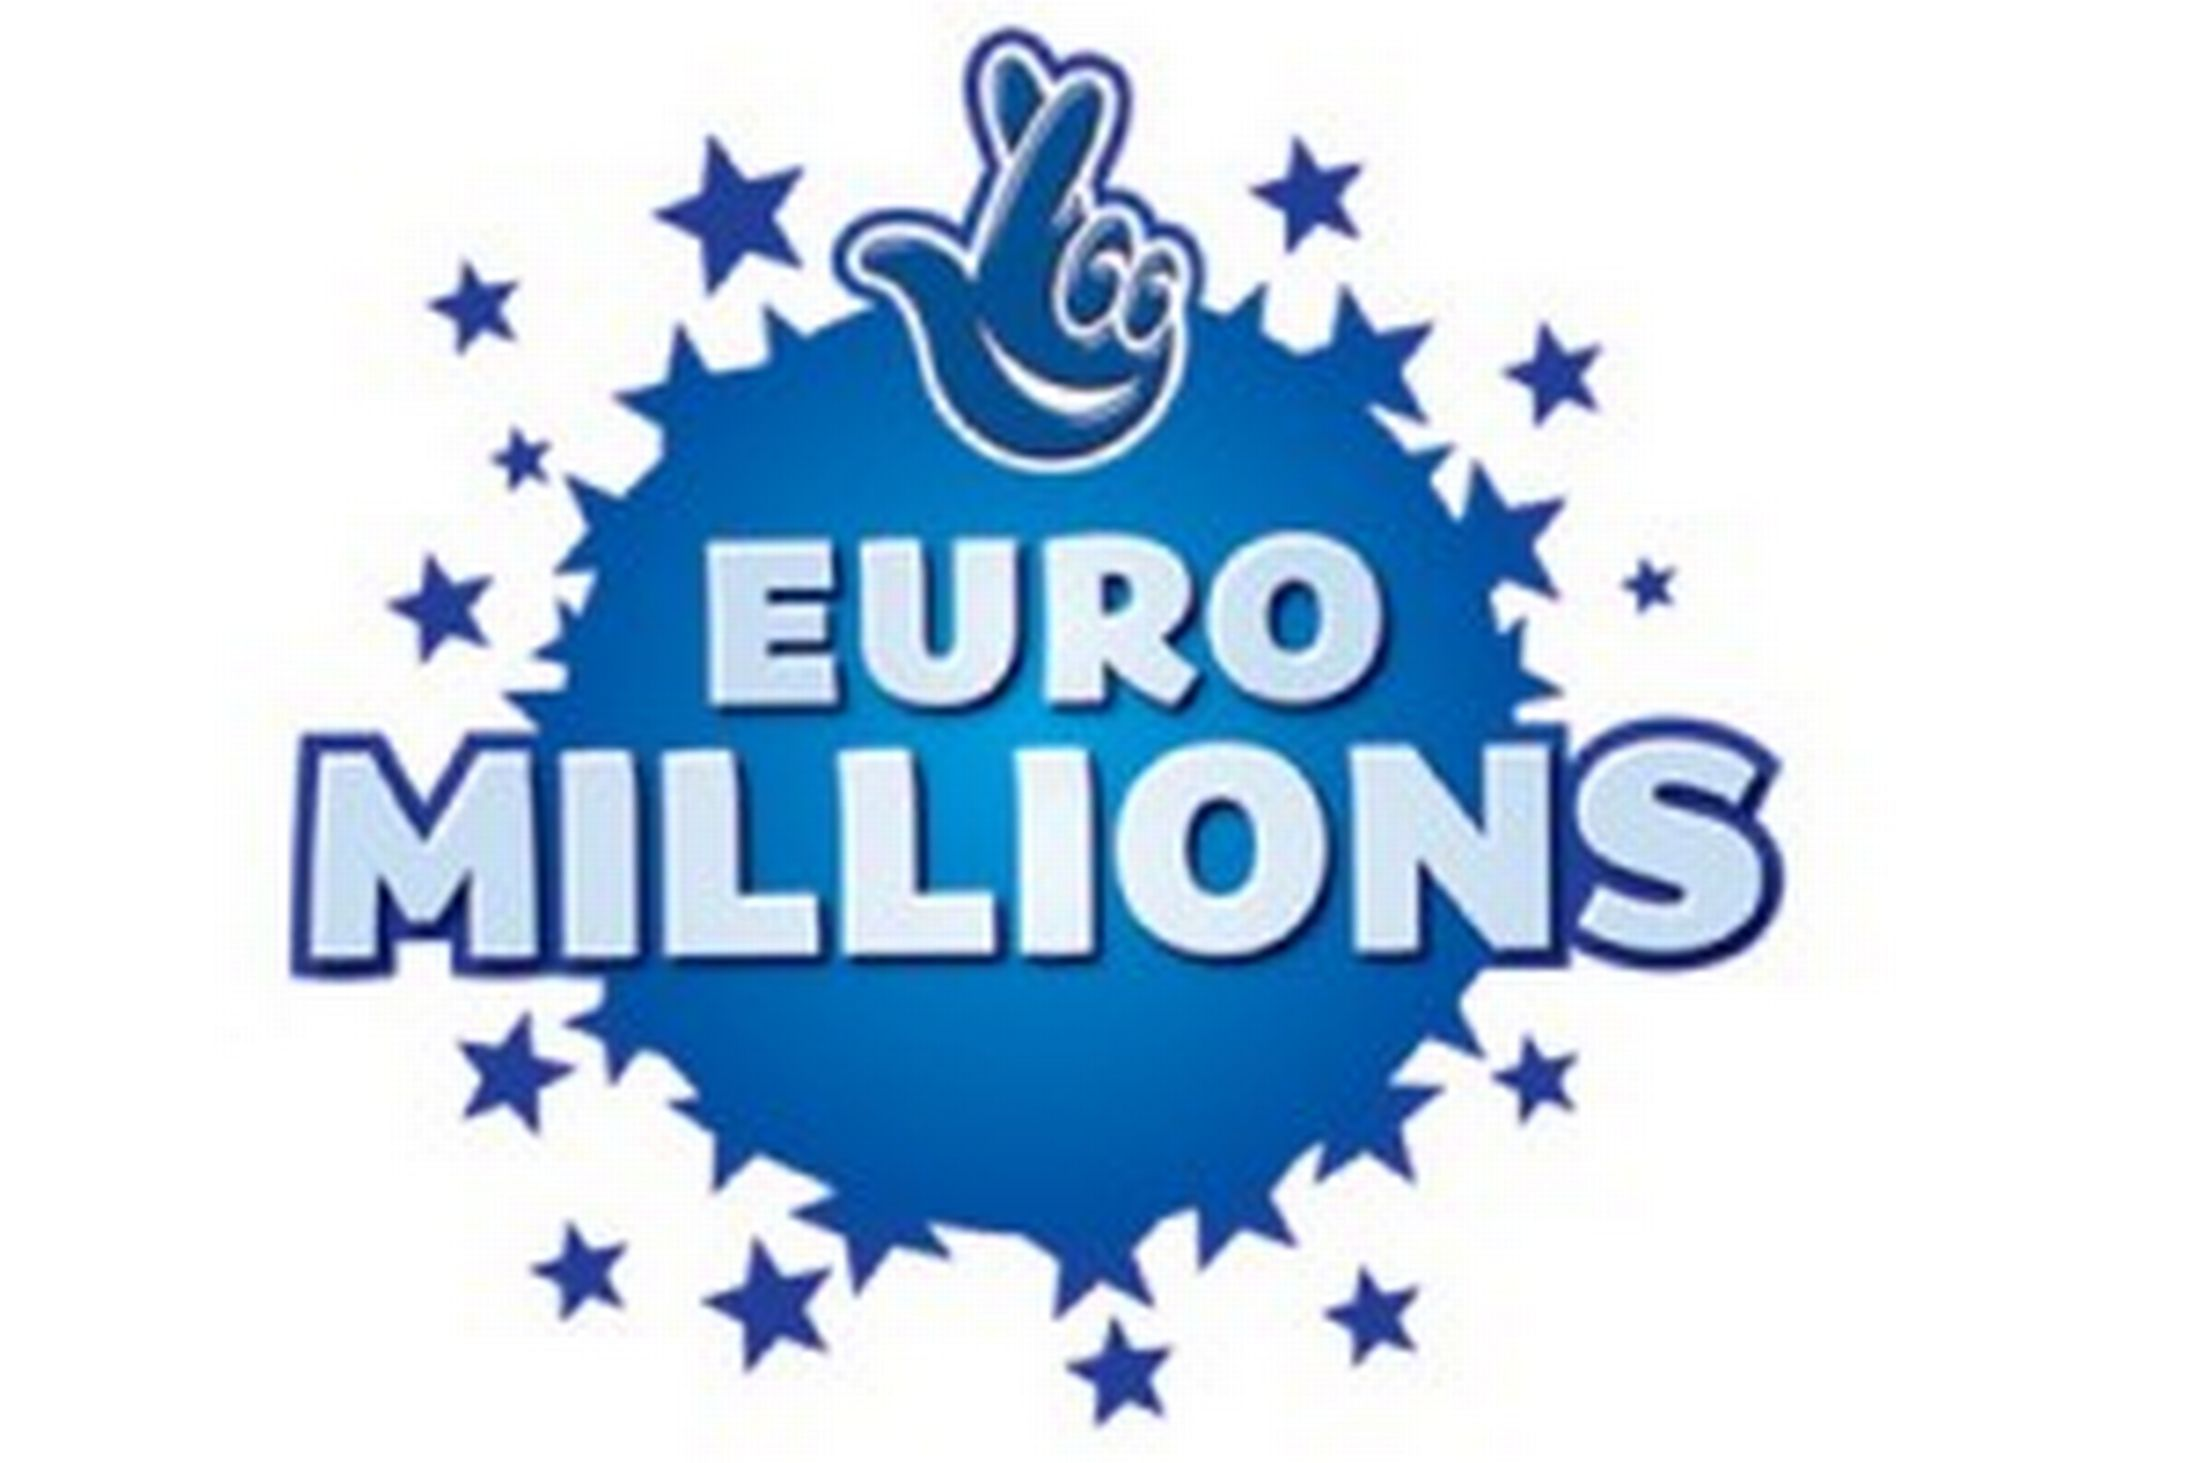 Euromillions €135,000,00 Jackpot Prize